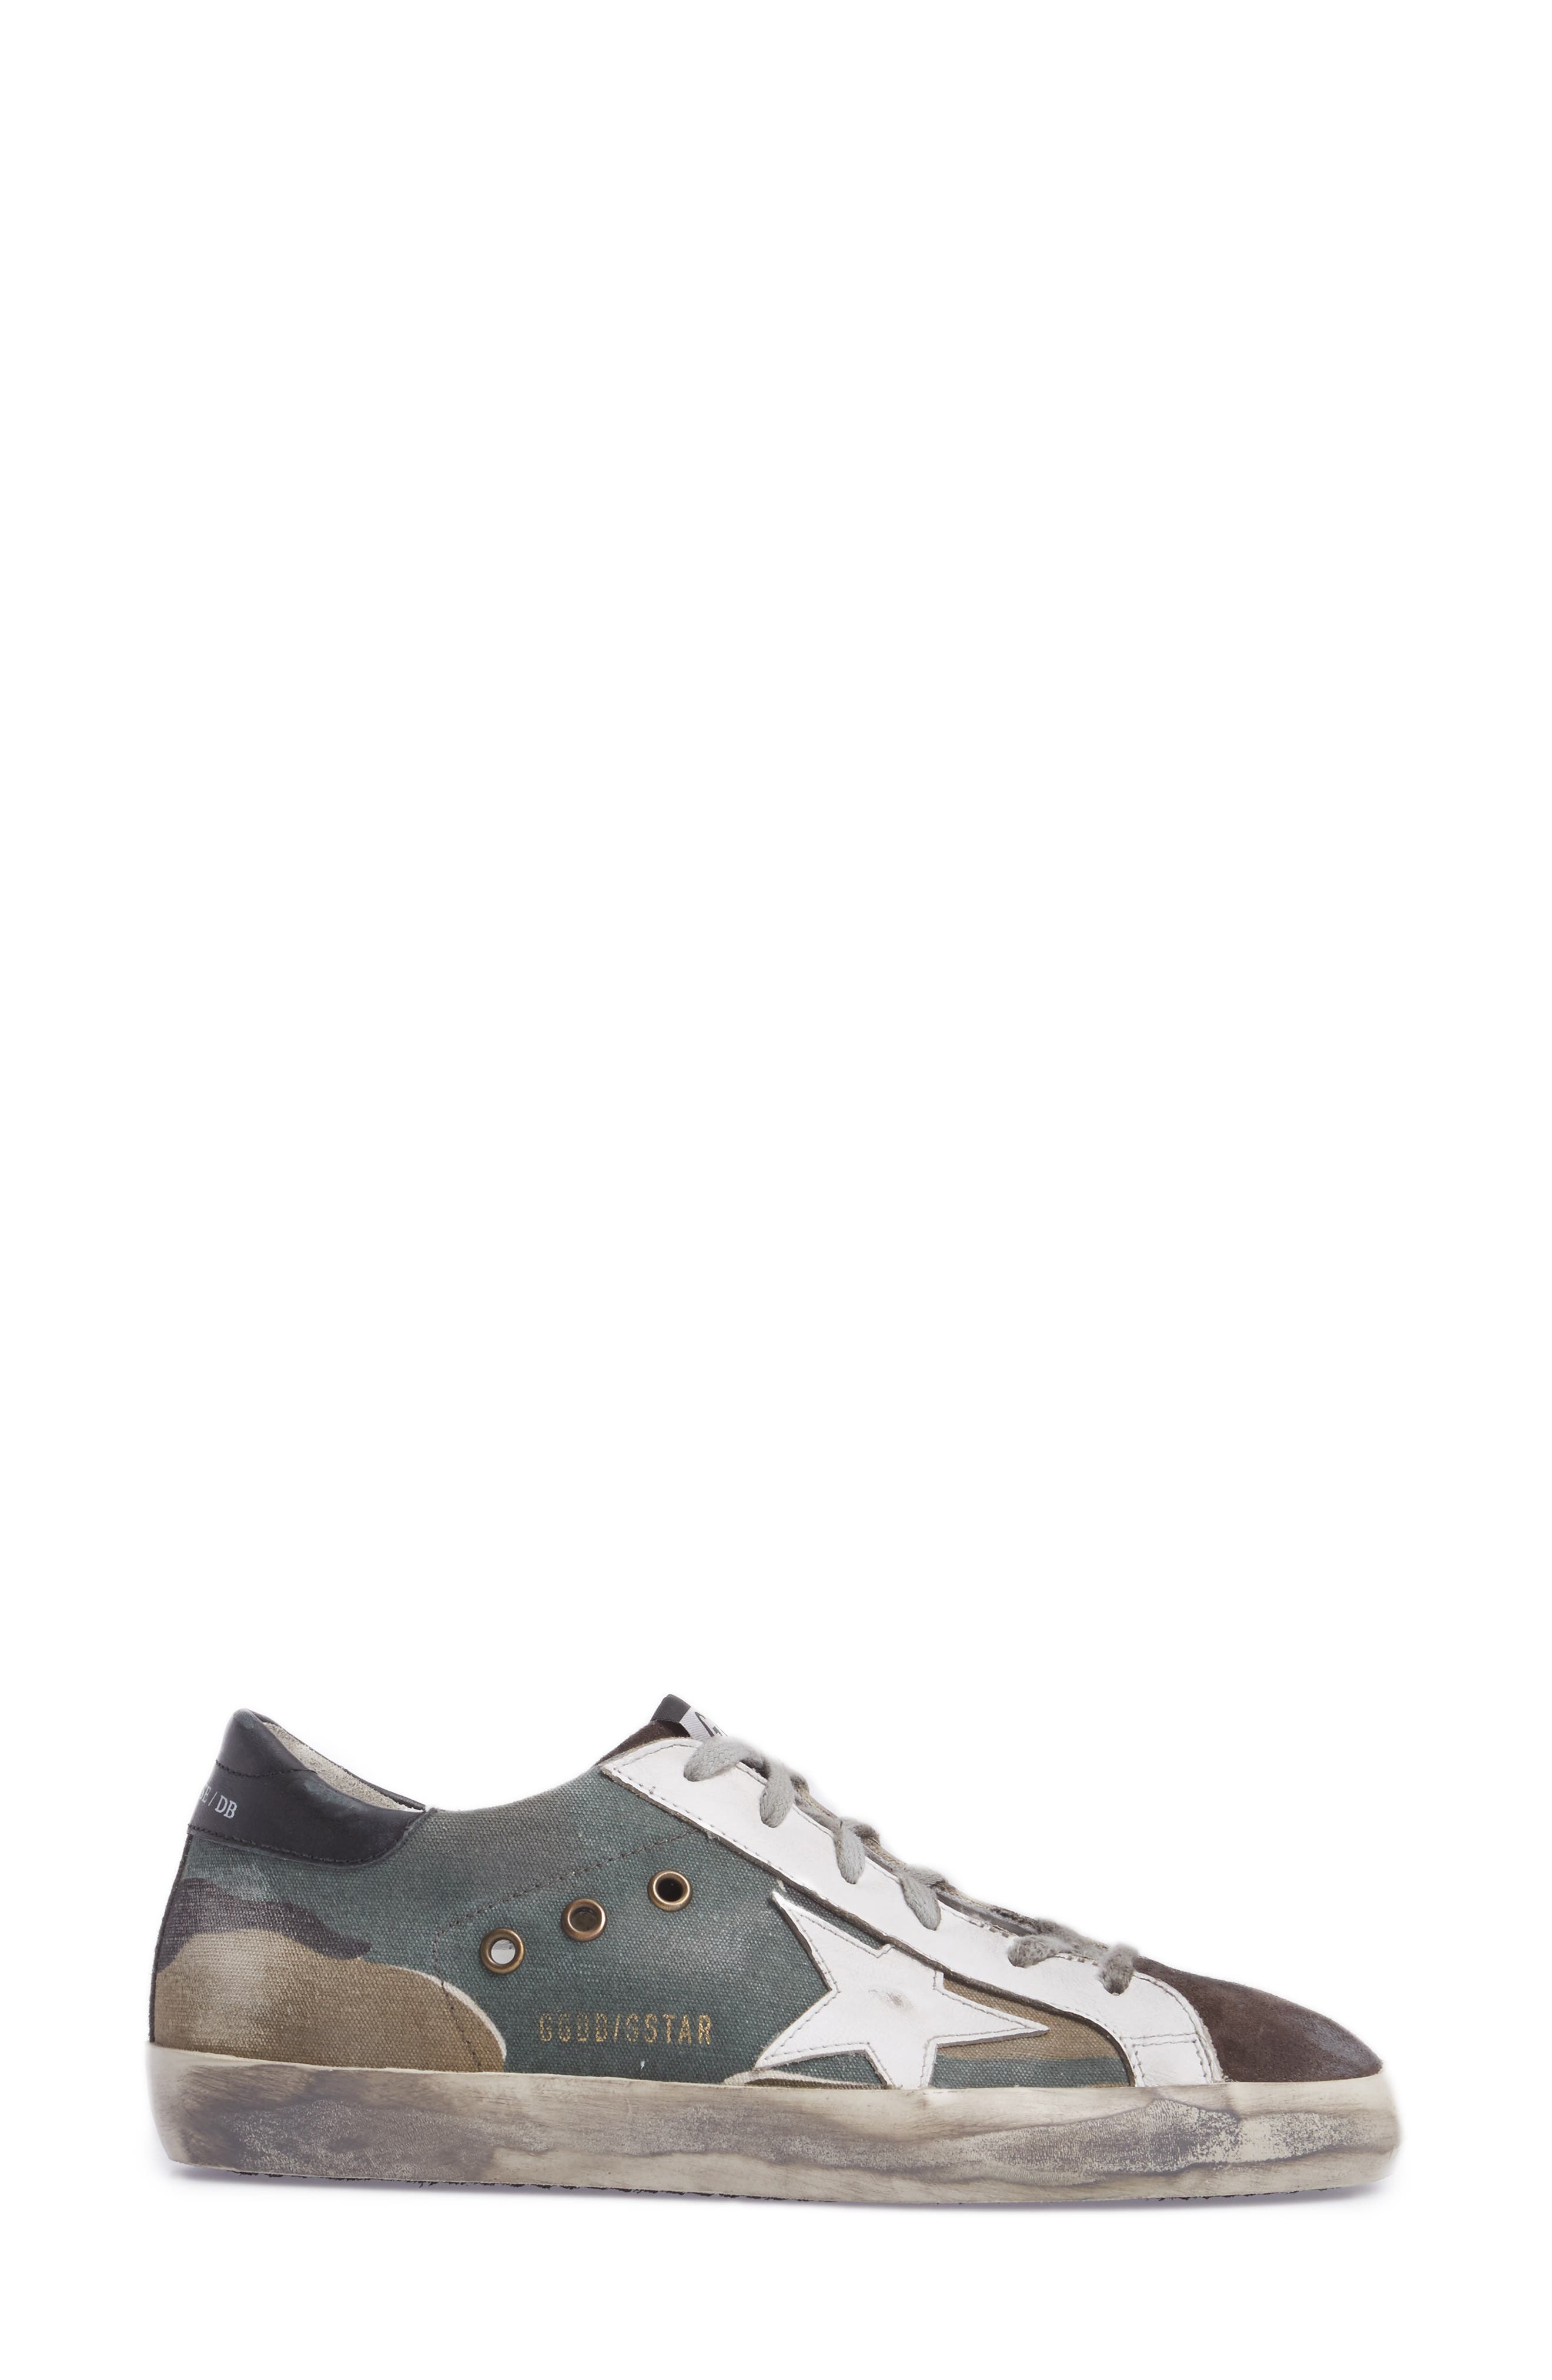 GOLDEN GOOSE,                             Superstar Low Top Sneaker,                             Alternate thumbnail 3, color,                             020